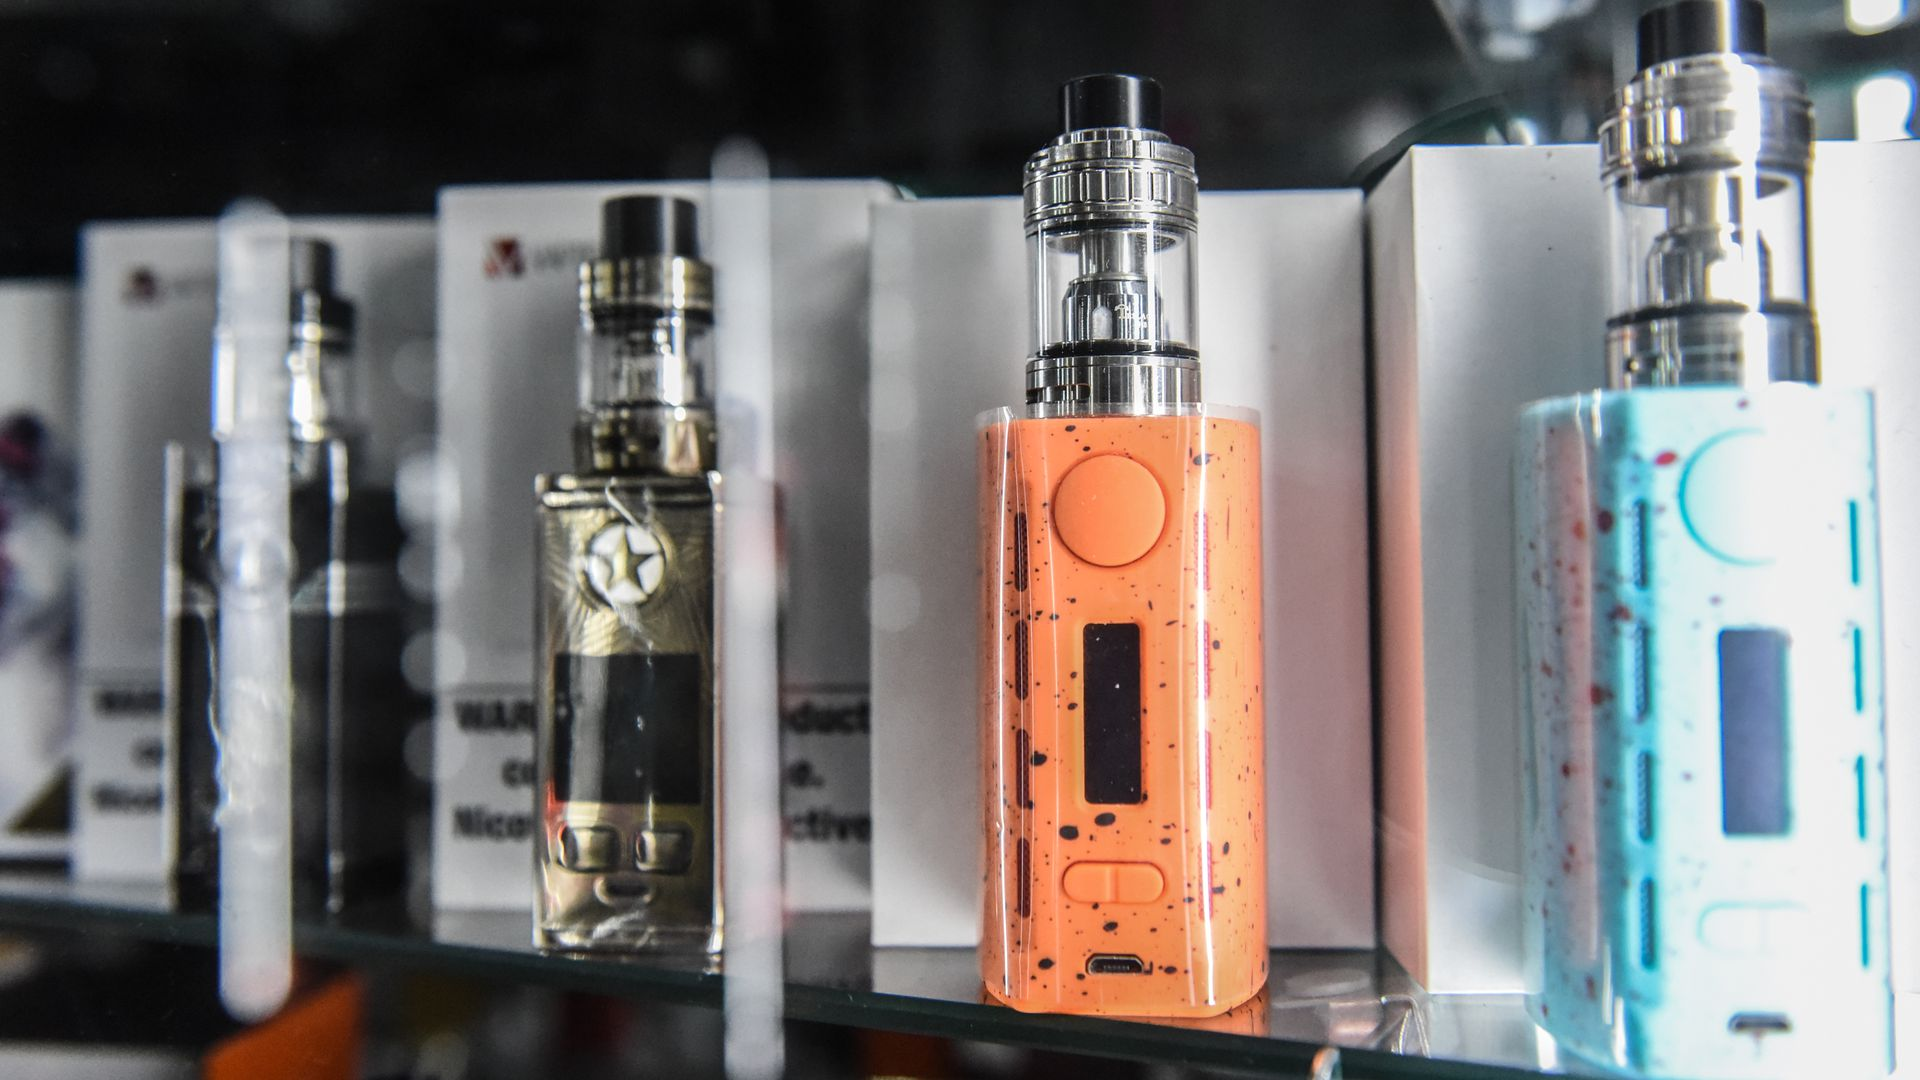 Vaping and e-cigarette products